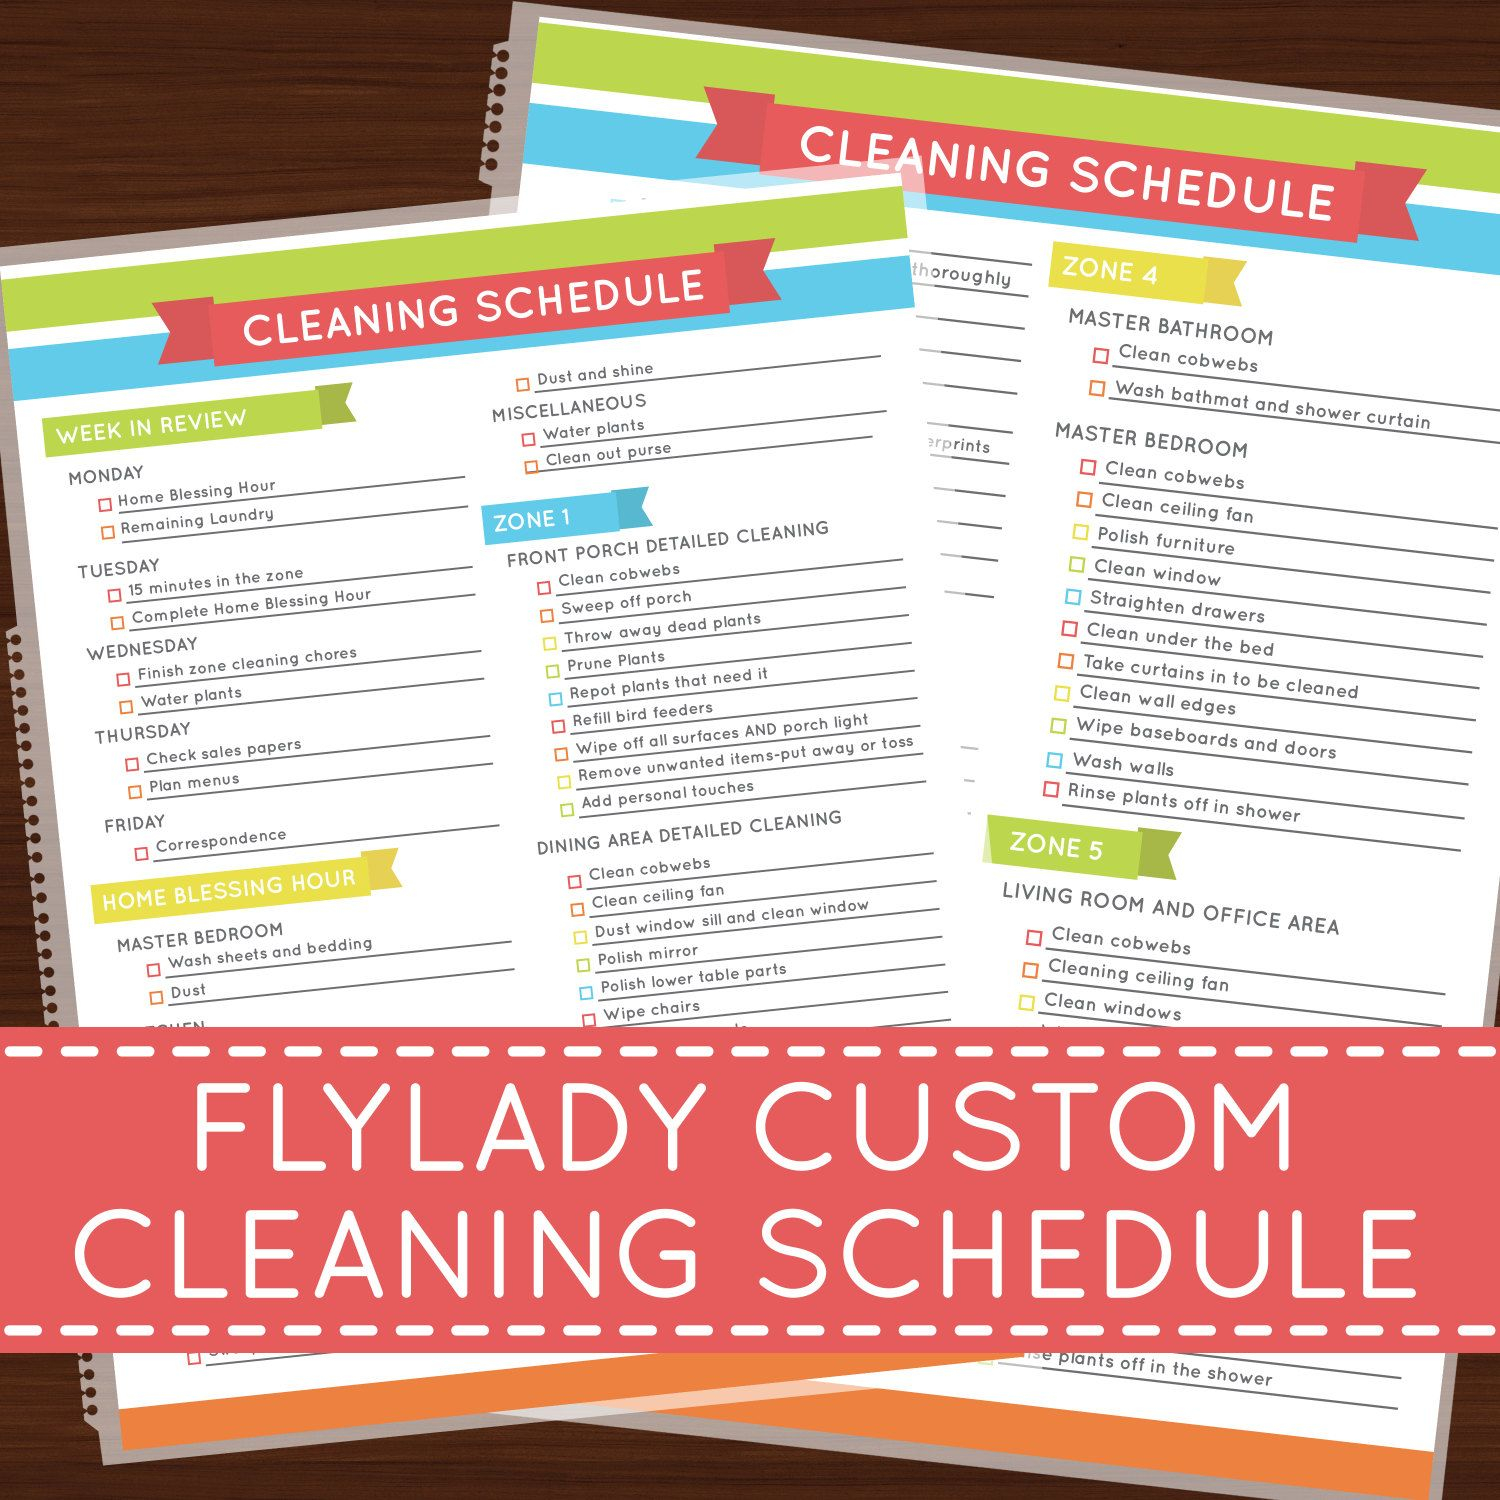 Laminated Flylady Custom Cleaning Schedule By